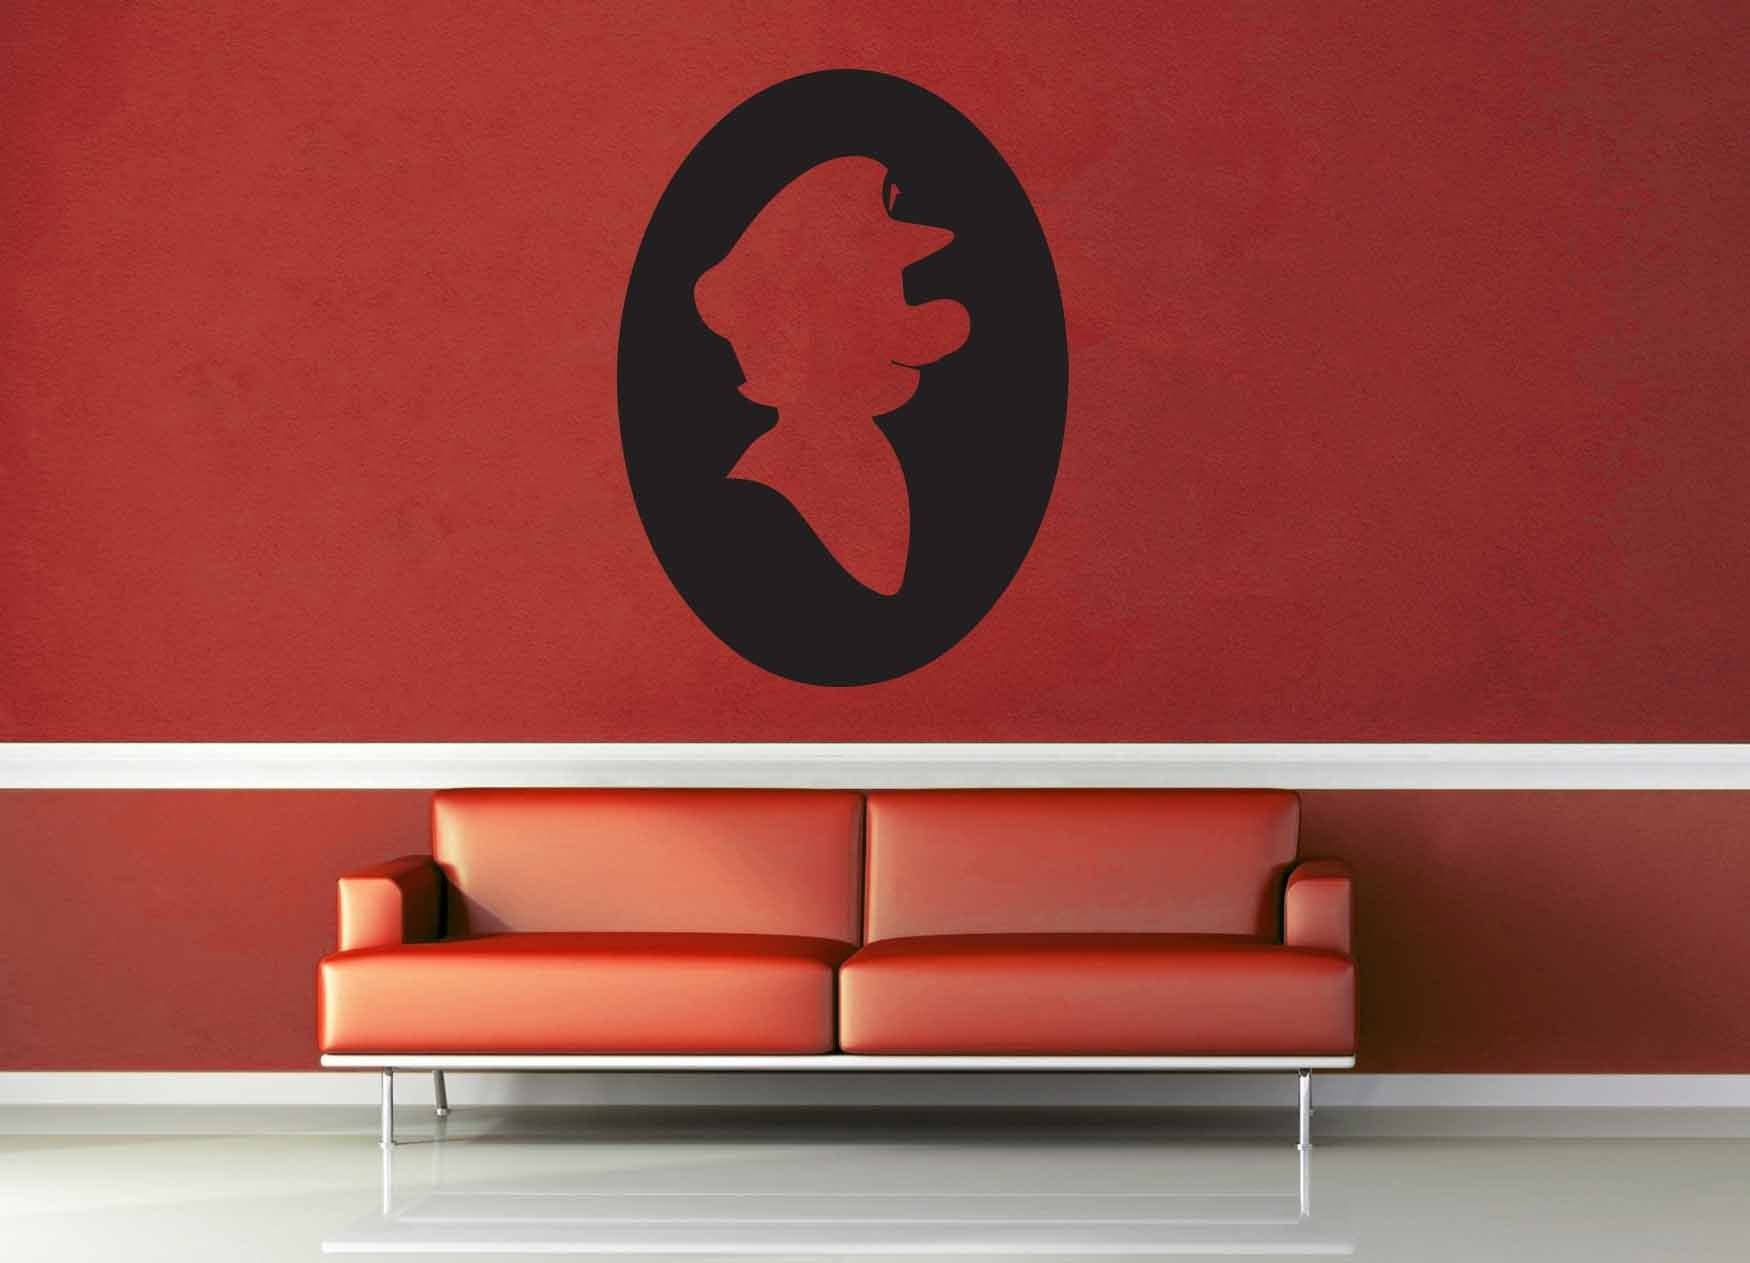 Mario Cameo - Gamer Decor - Wall Decal